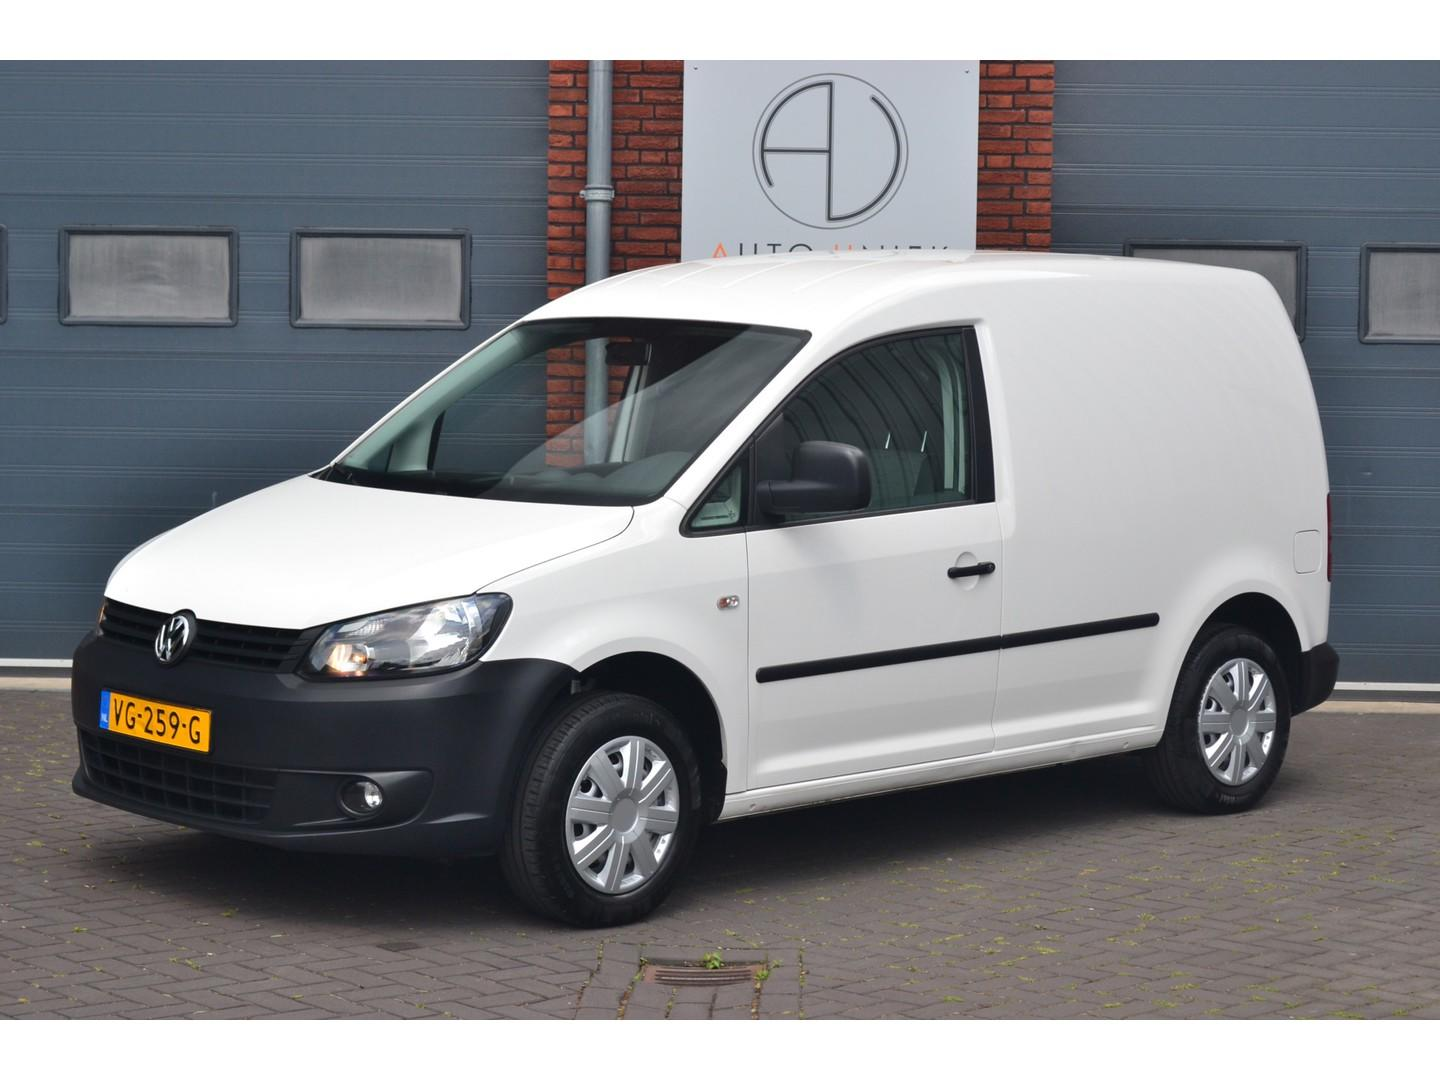 Volkswagen Caddy 1.6 tdi bmt airco, cruise control, electro pakket